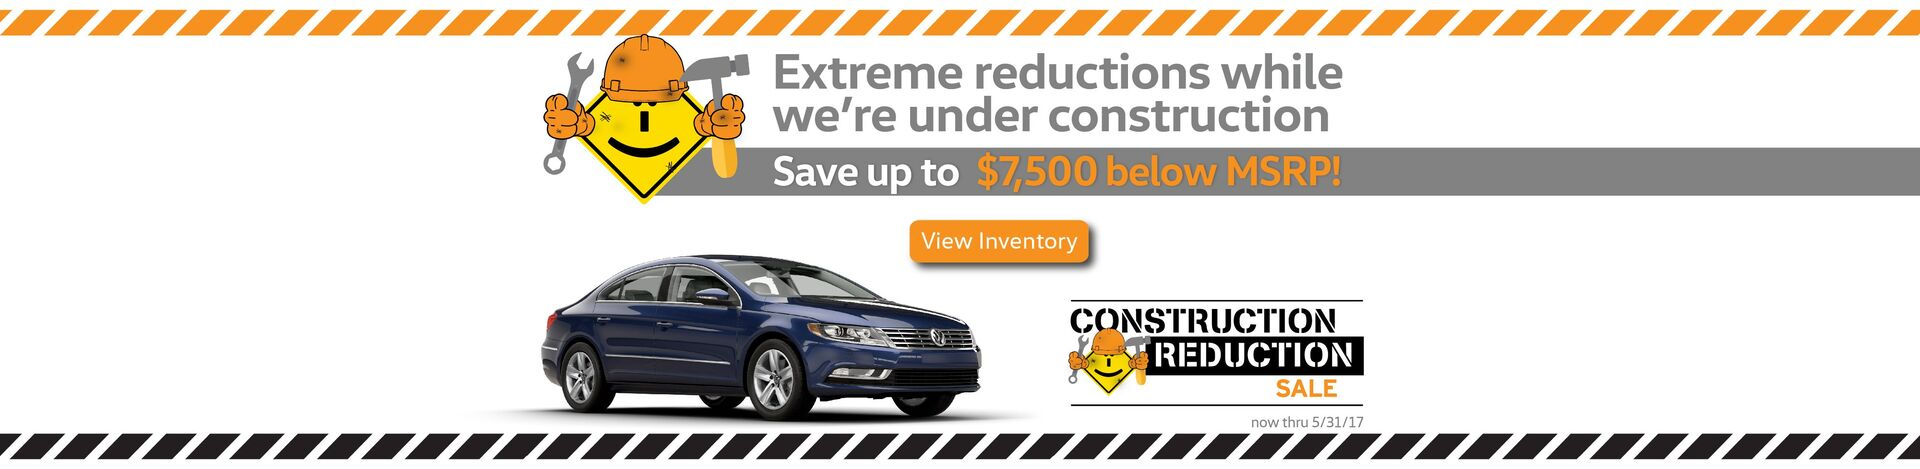 Capo VW Construction Reduction Sale - savings up to $7,500 below MSRP!